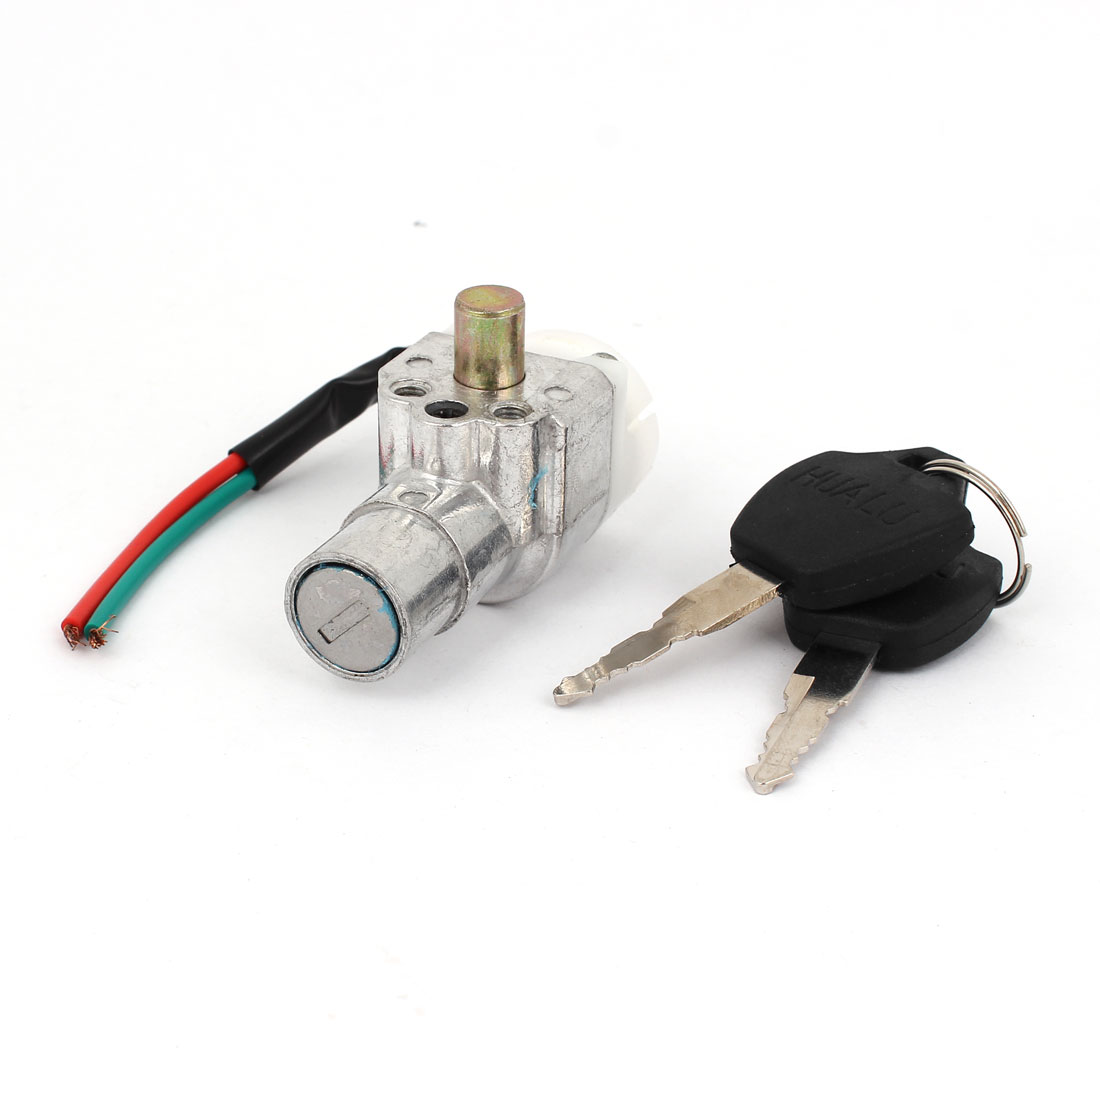 DC 48V 2 Wires Ignition Switch Keys Lock for Bike Scooters